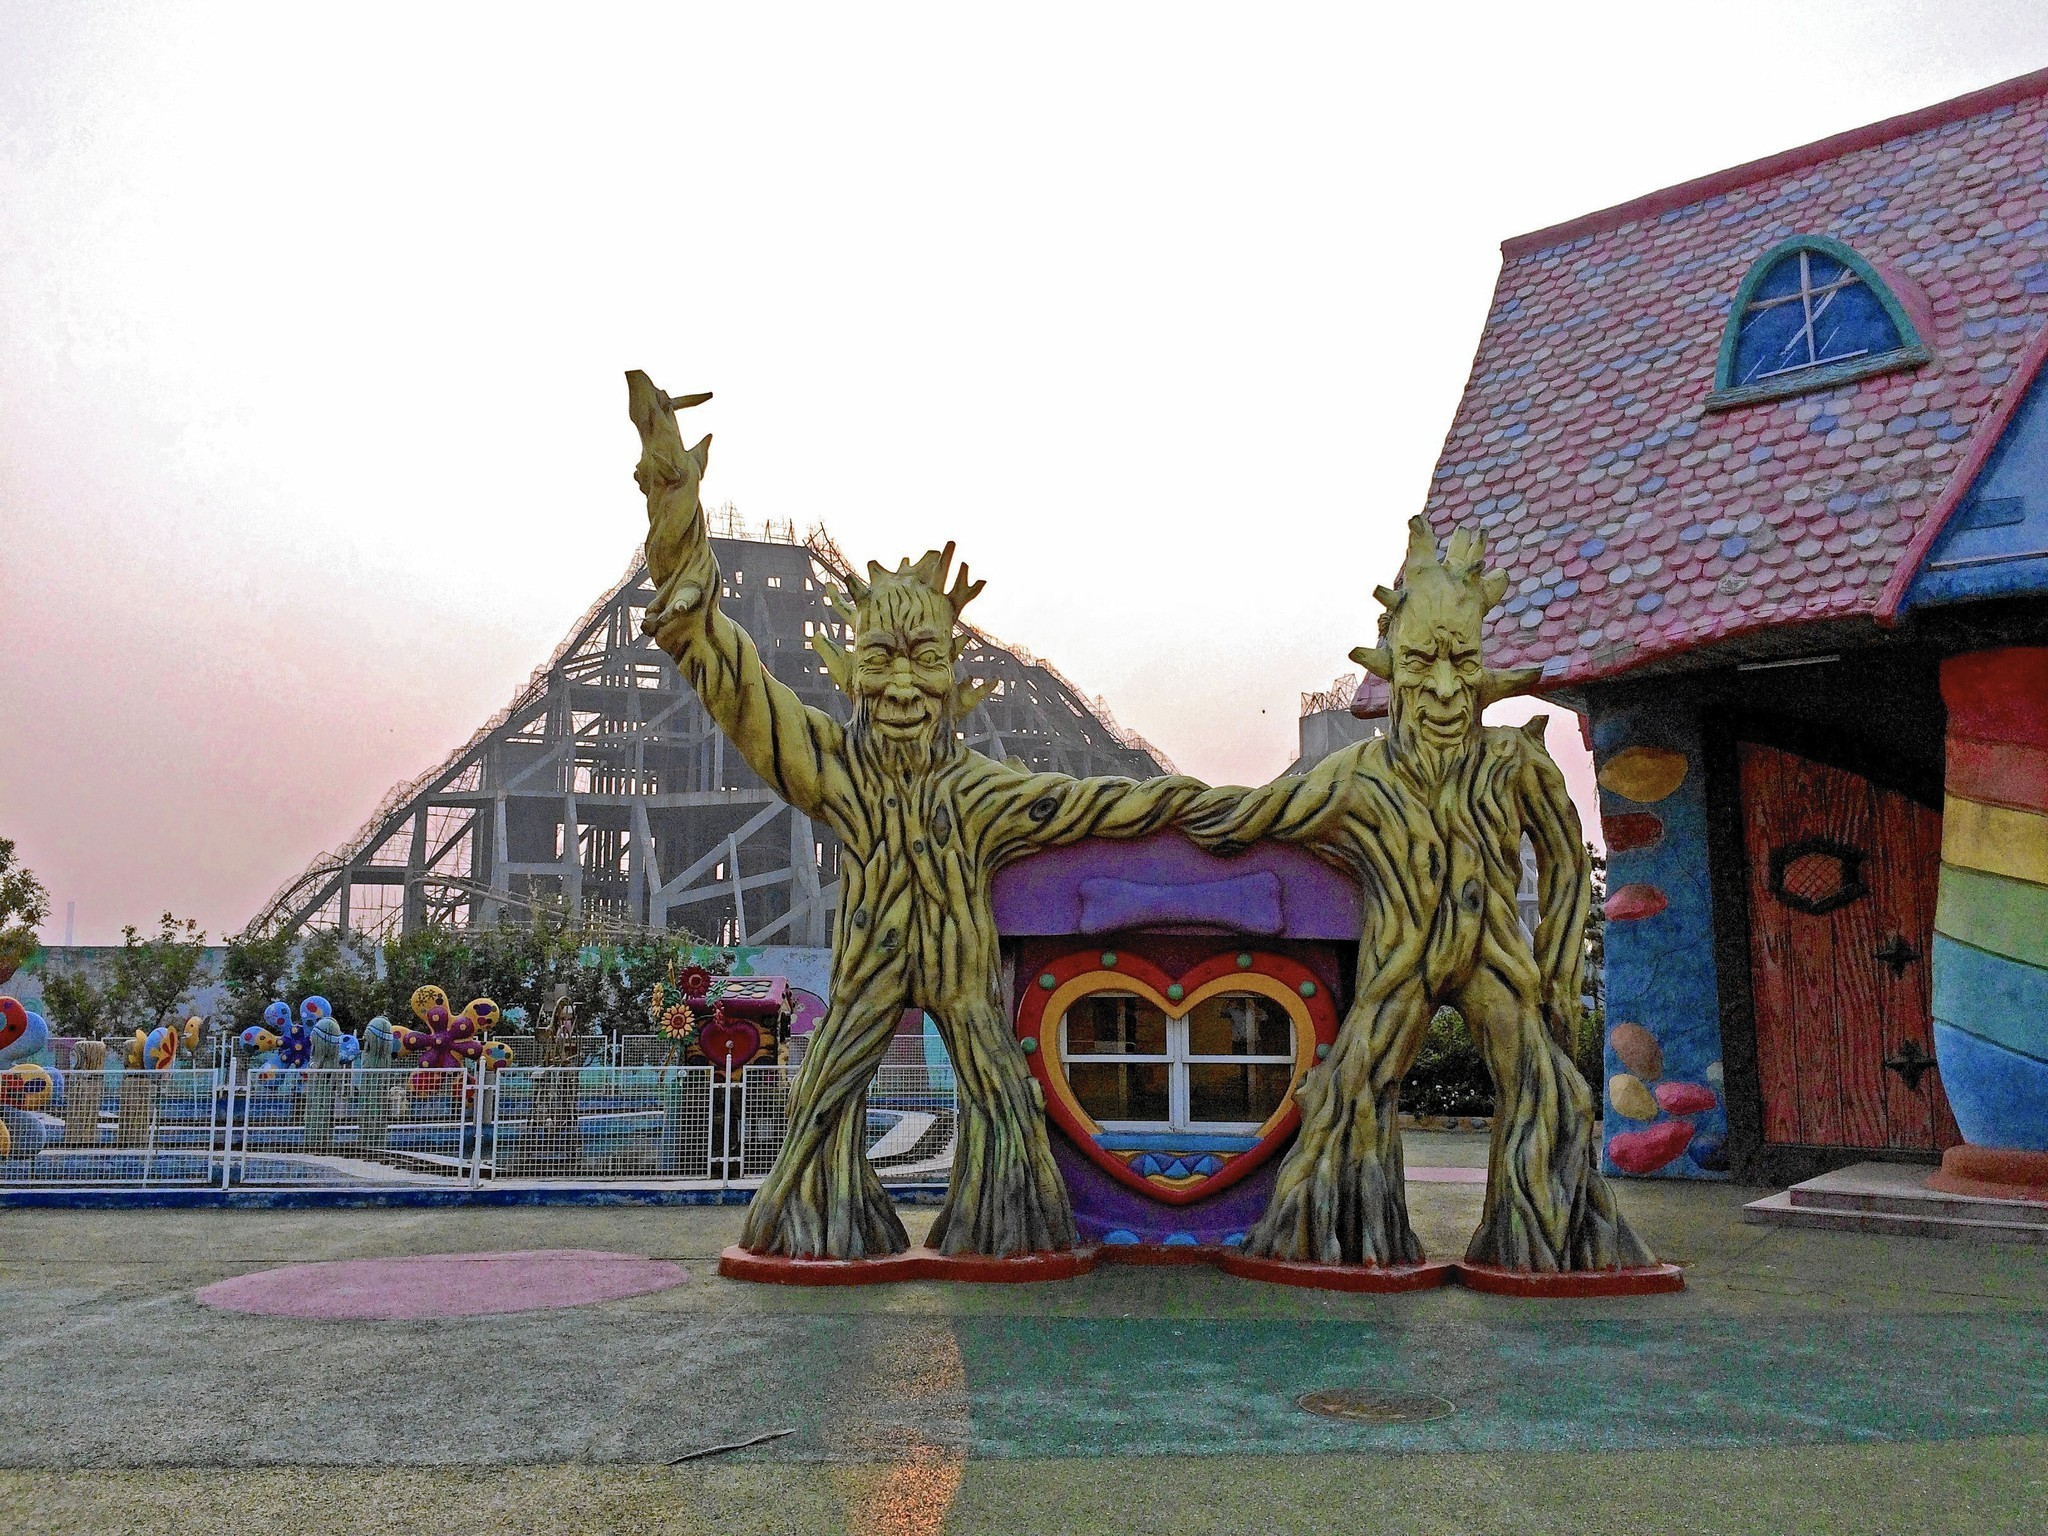 Theme Park Developments in China Hit Crossroads: Real or Pixie Dust?